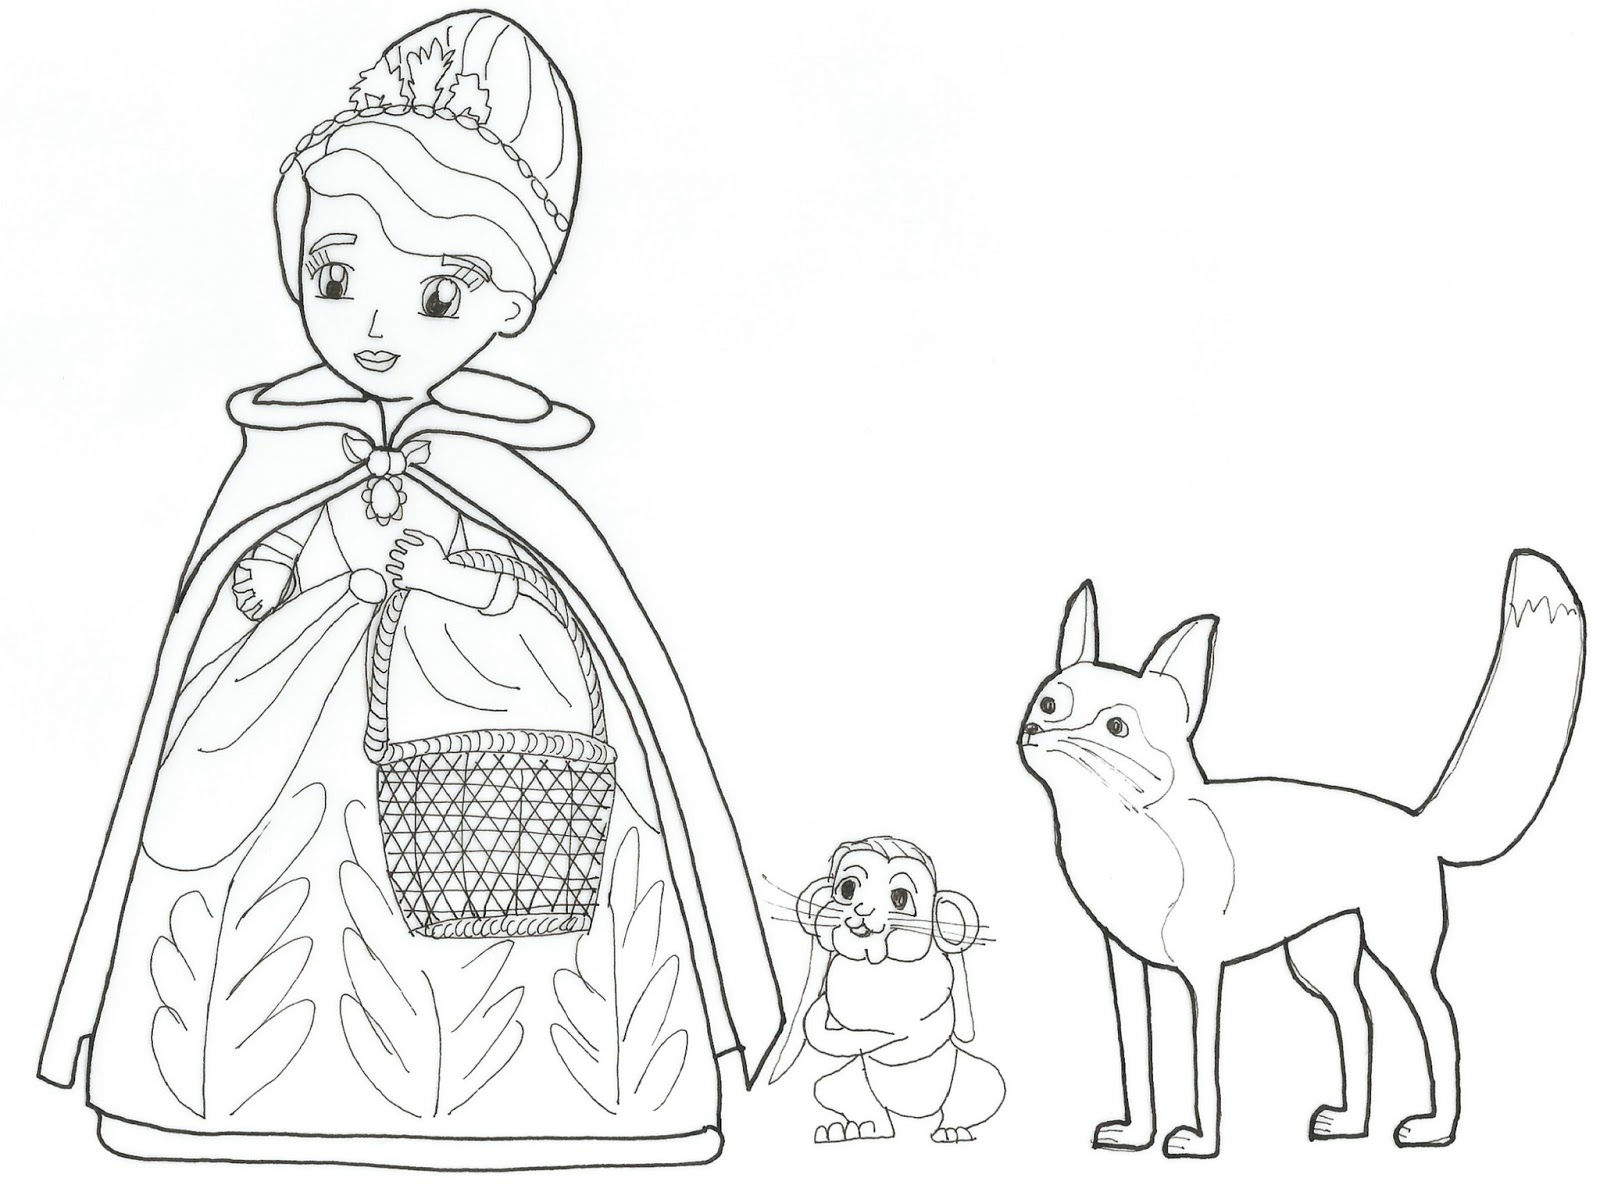 Sofia The First Coloring Pages April 2016 Coloring Pages Of Sofia The